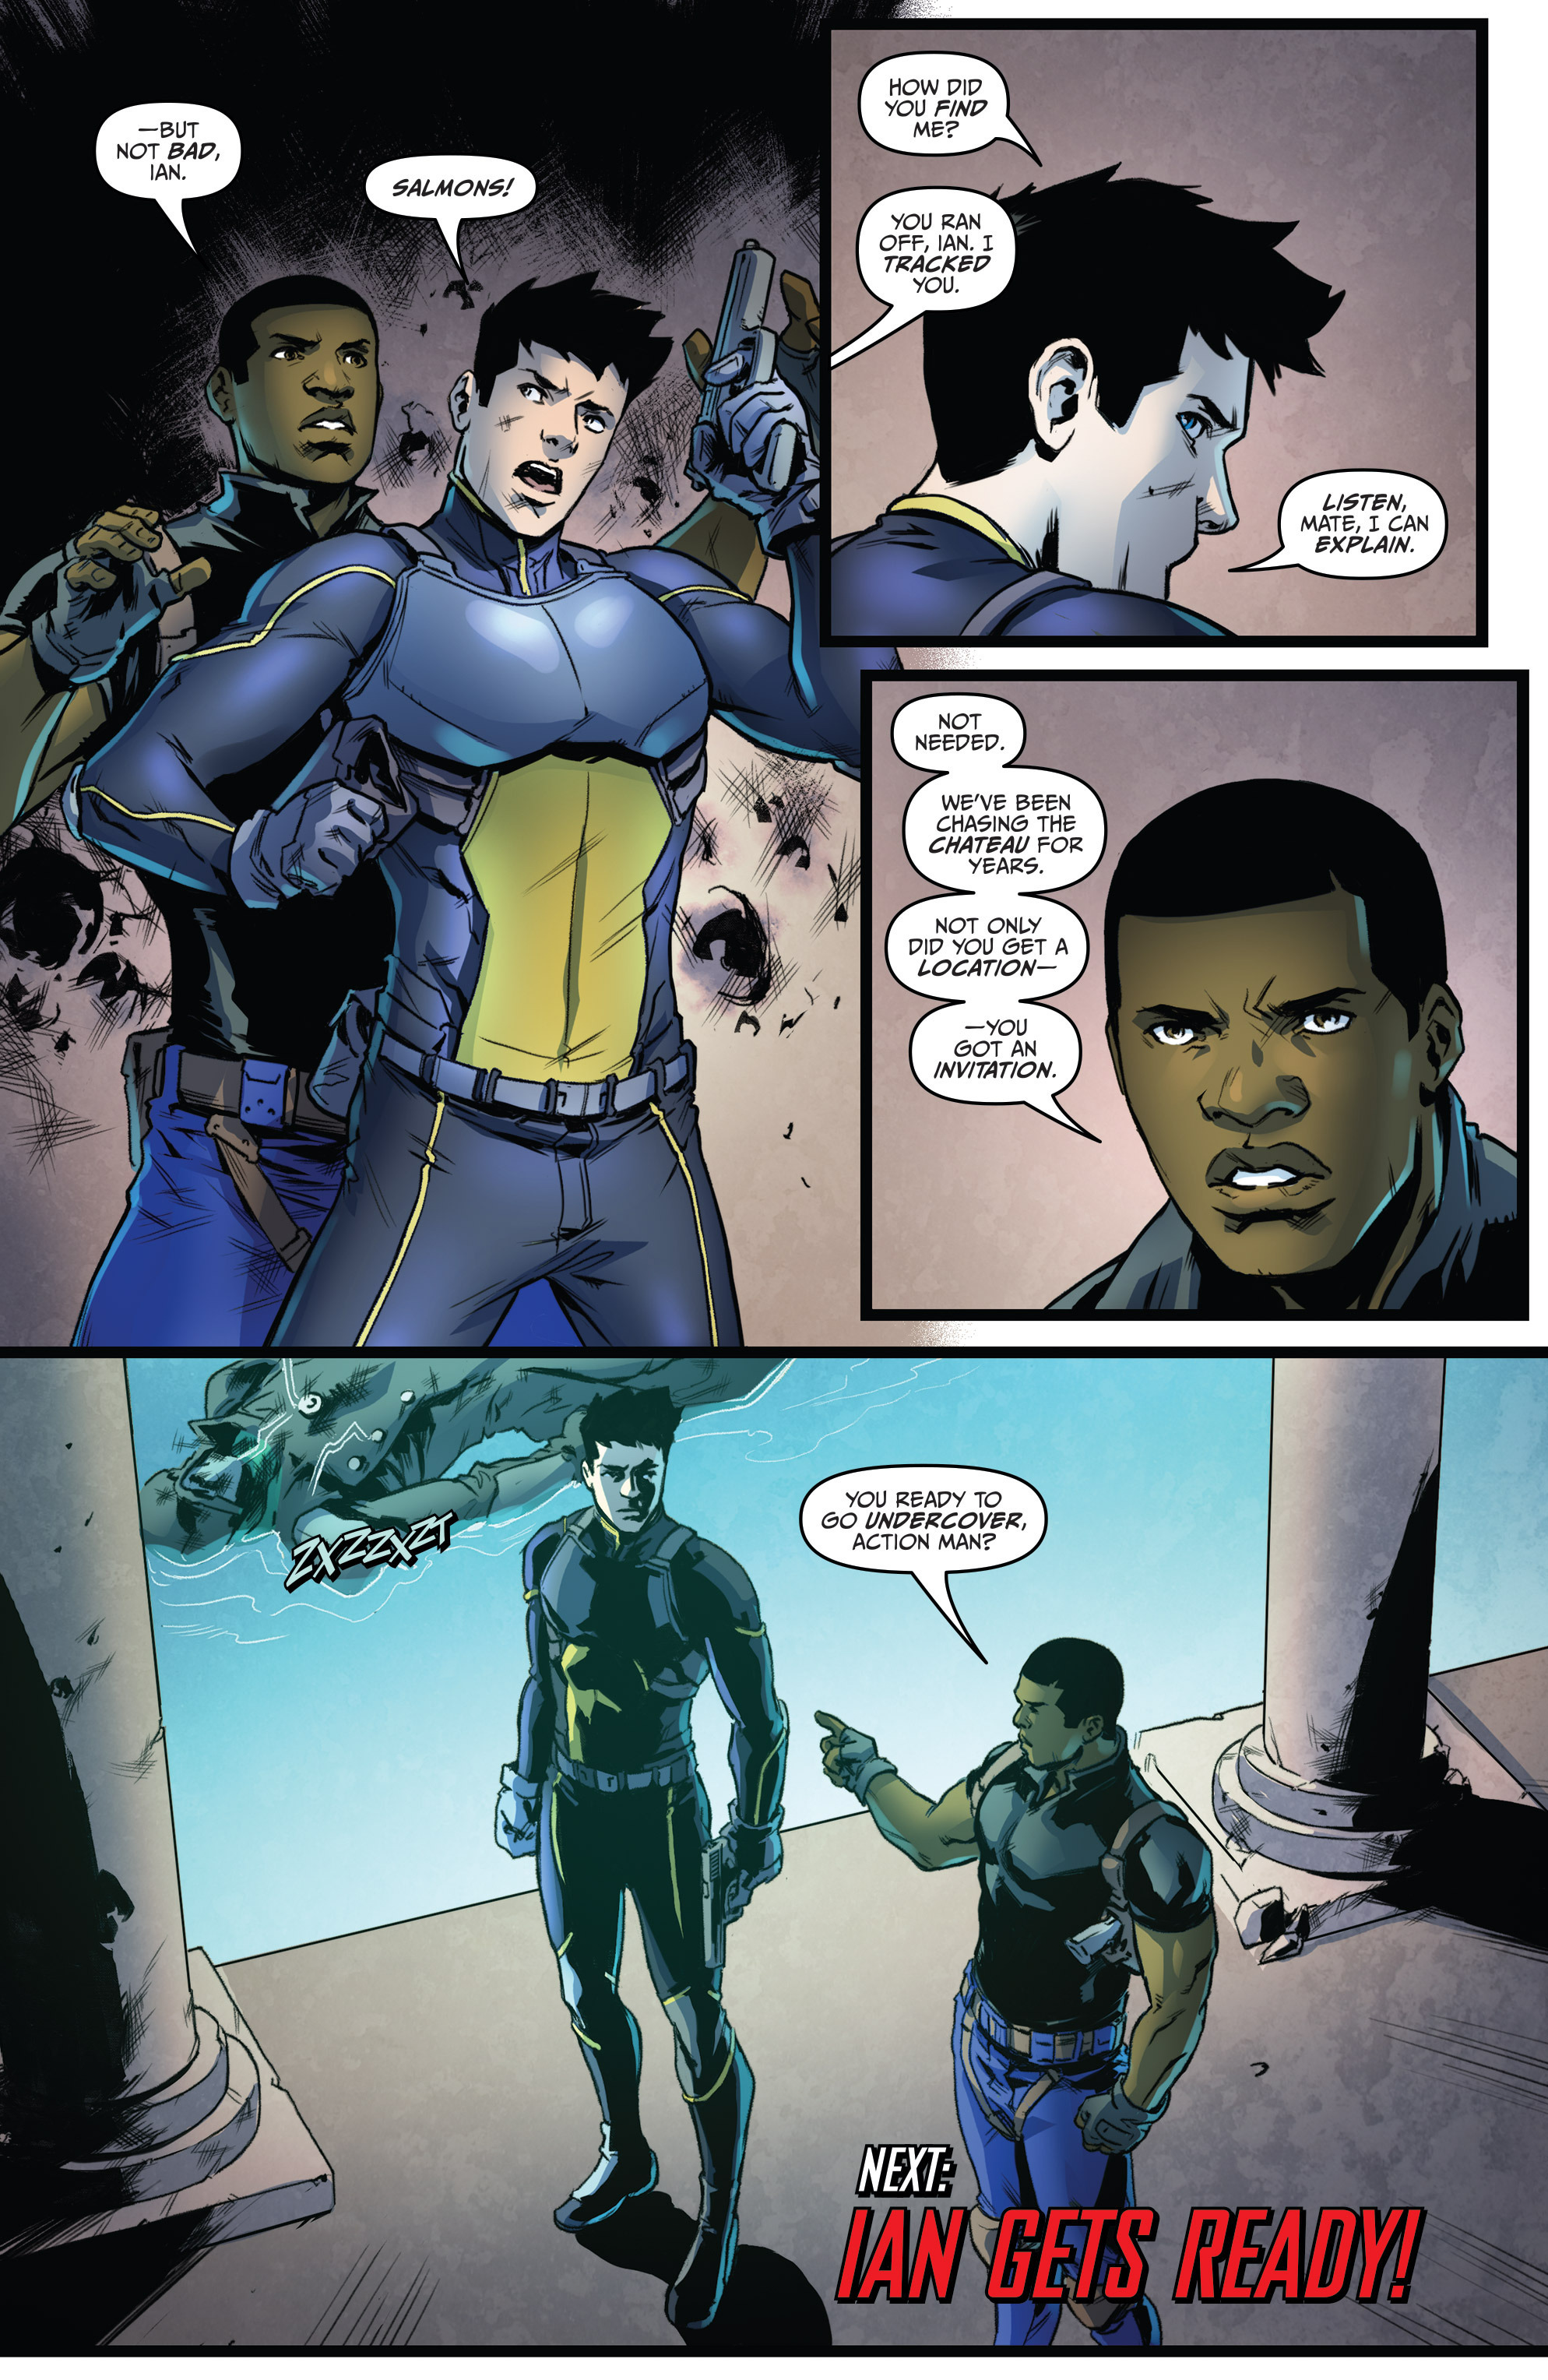 Read online Action Man comic -  Issue #2 - 24